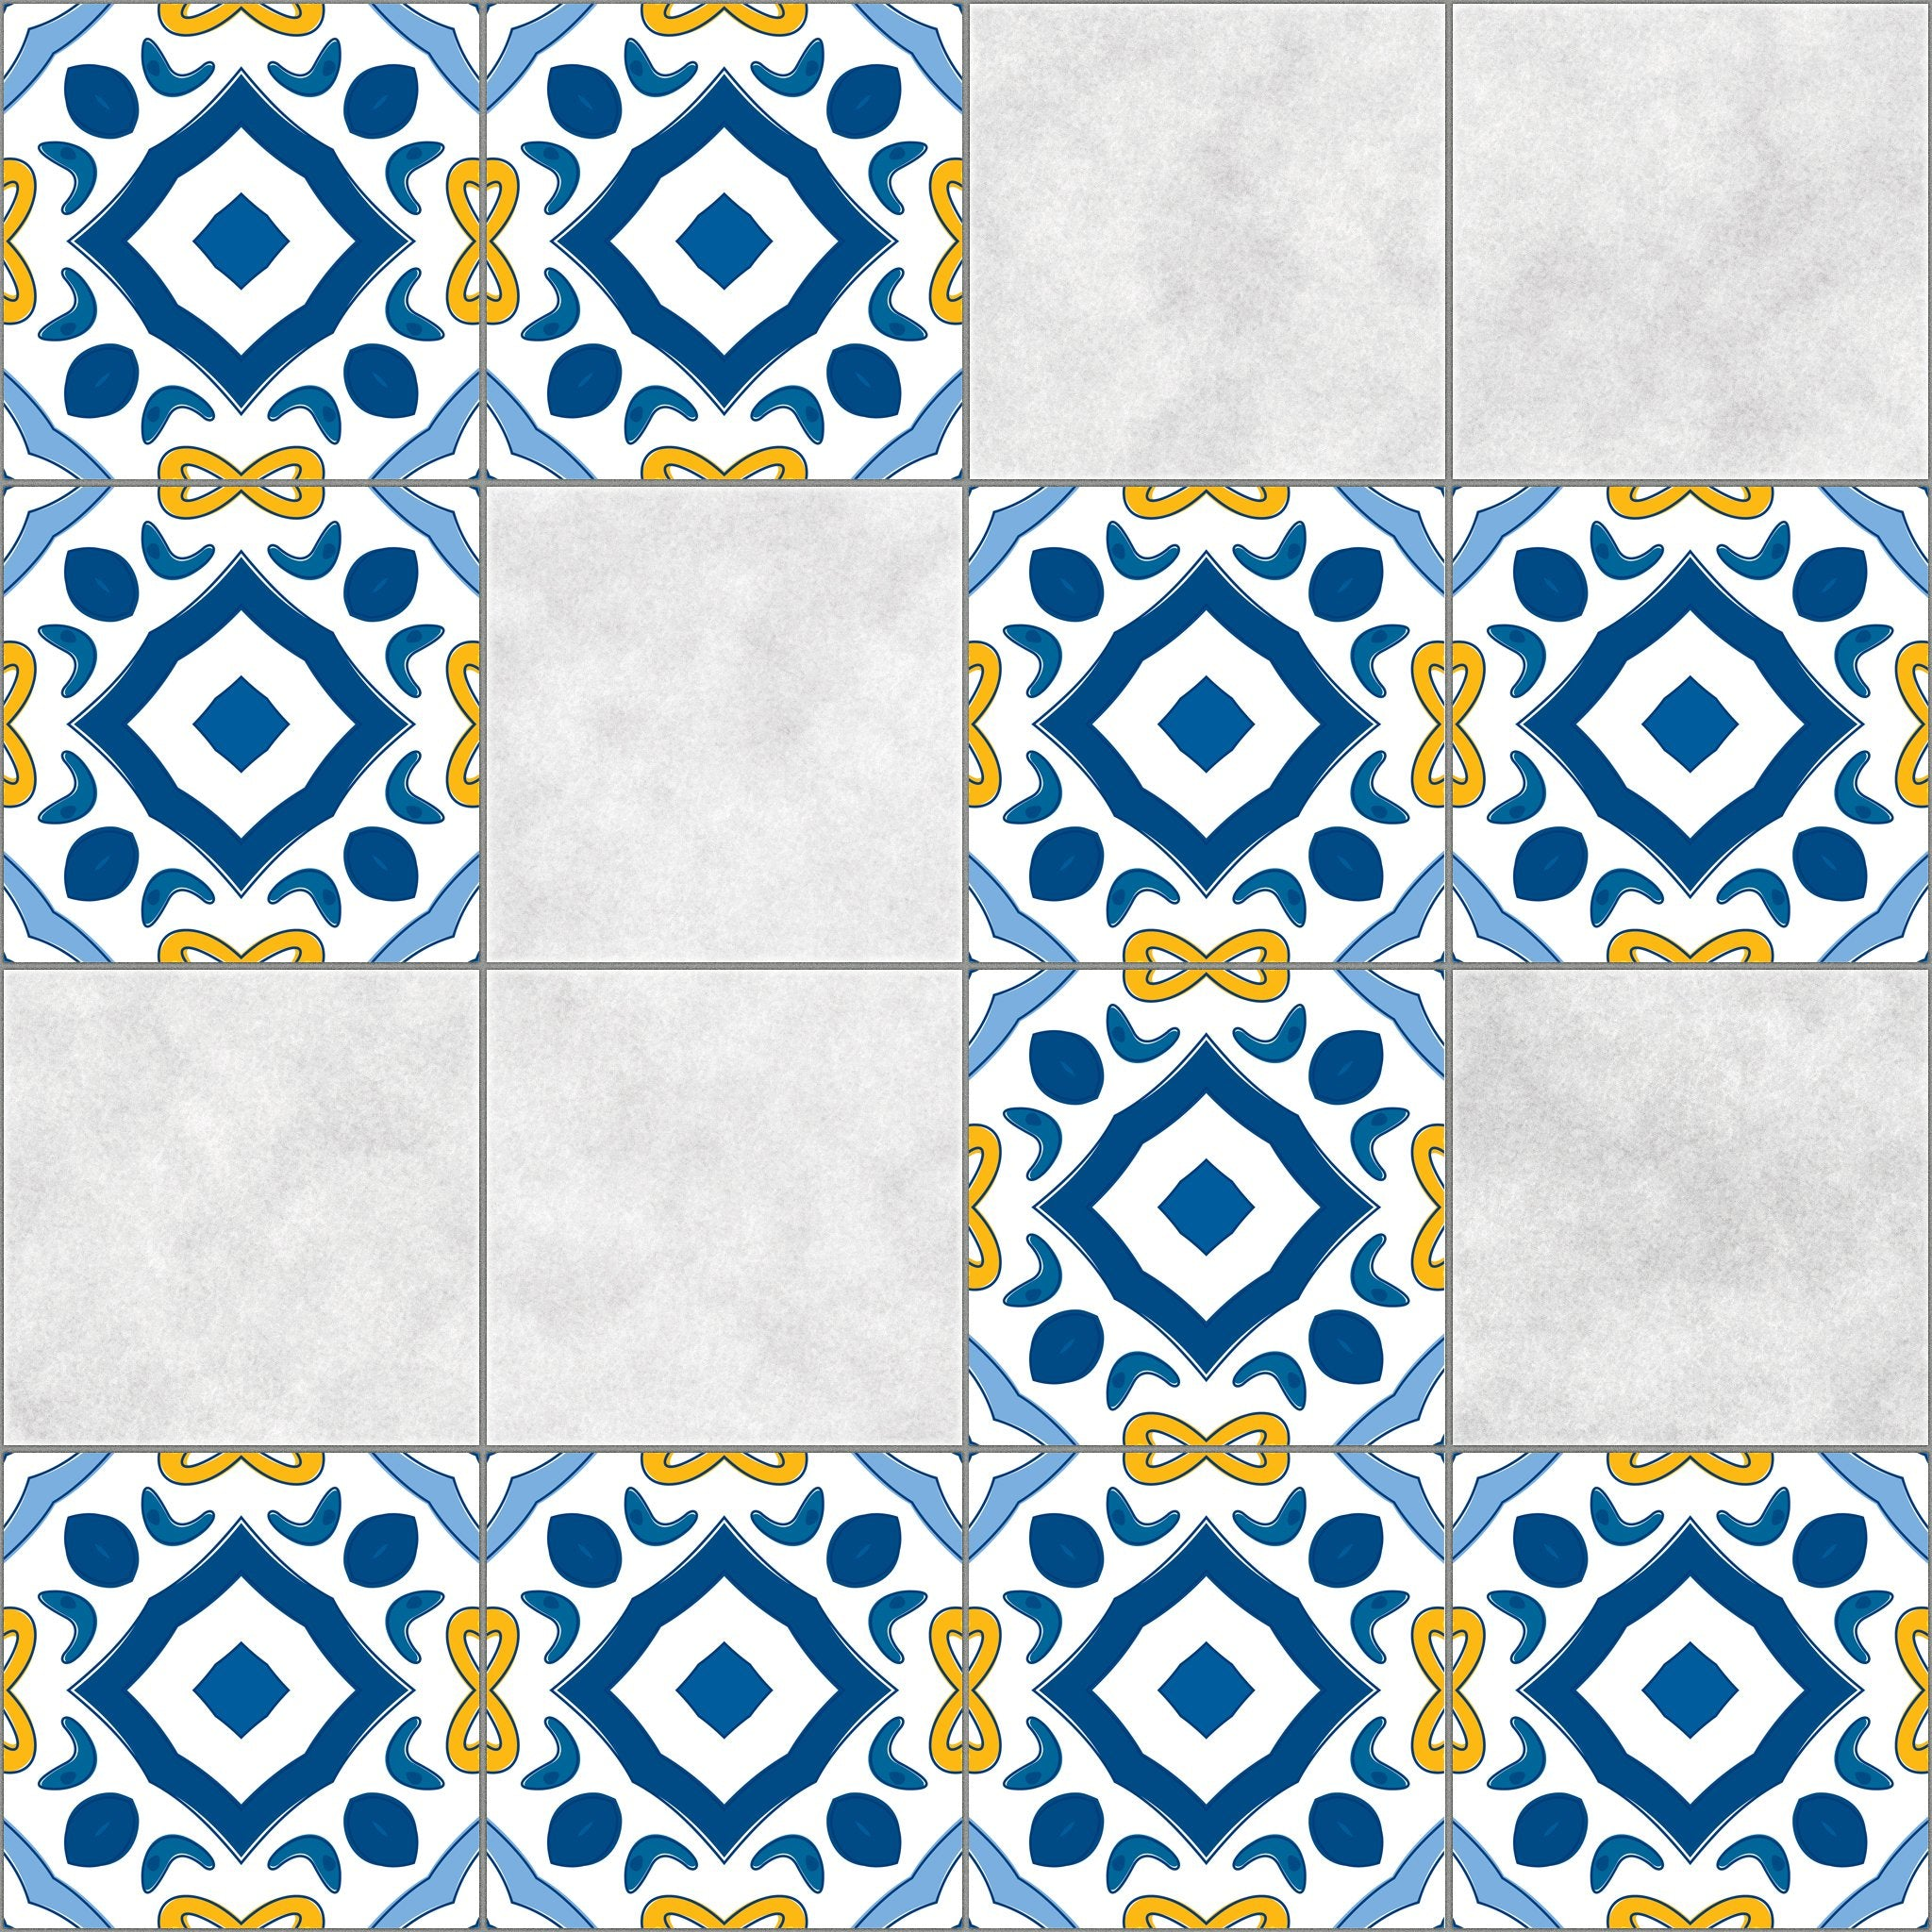 Tile stickers - KP068